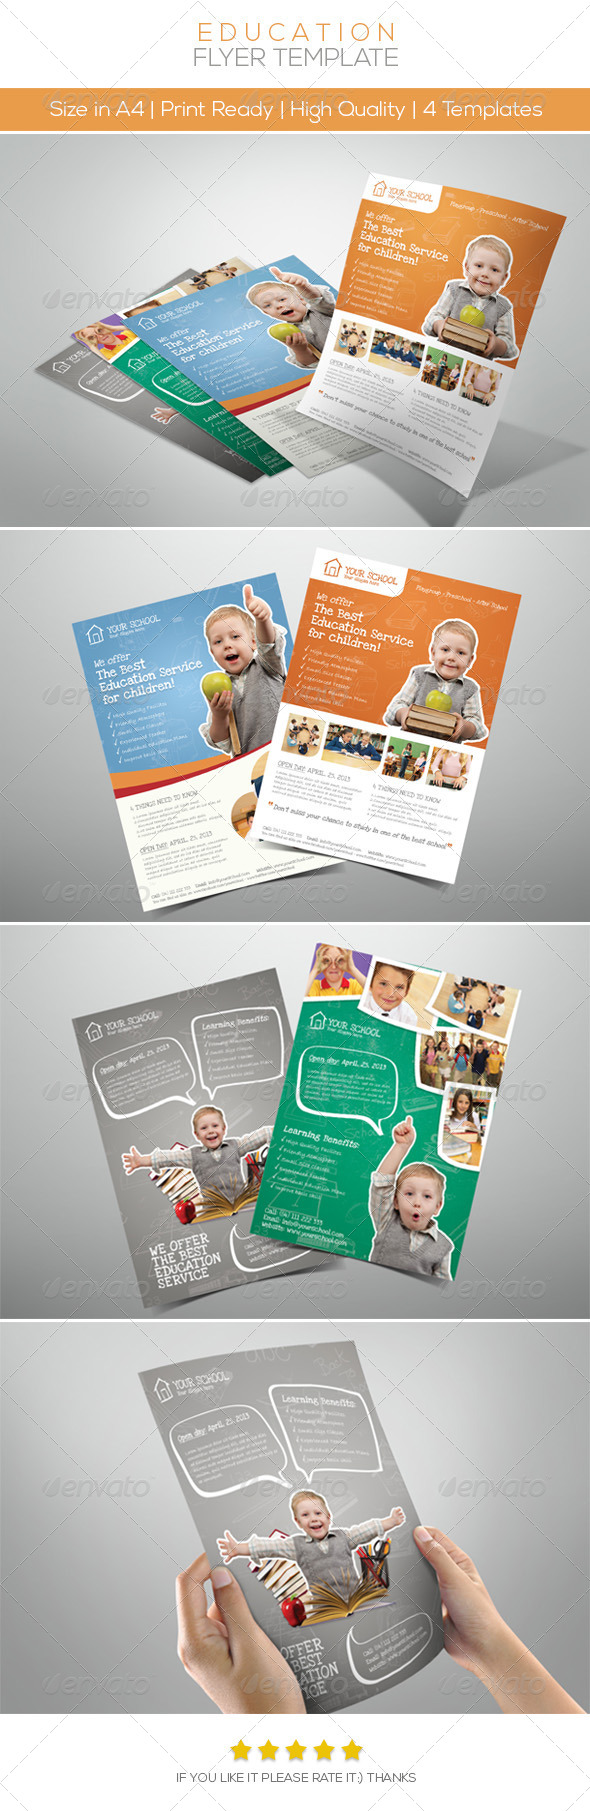 Premium Junior Education Flyers - Flyers Print Templates